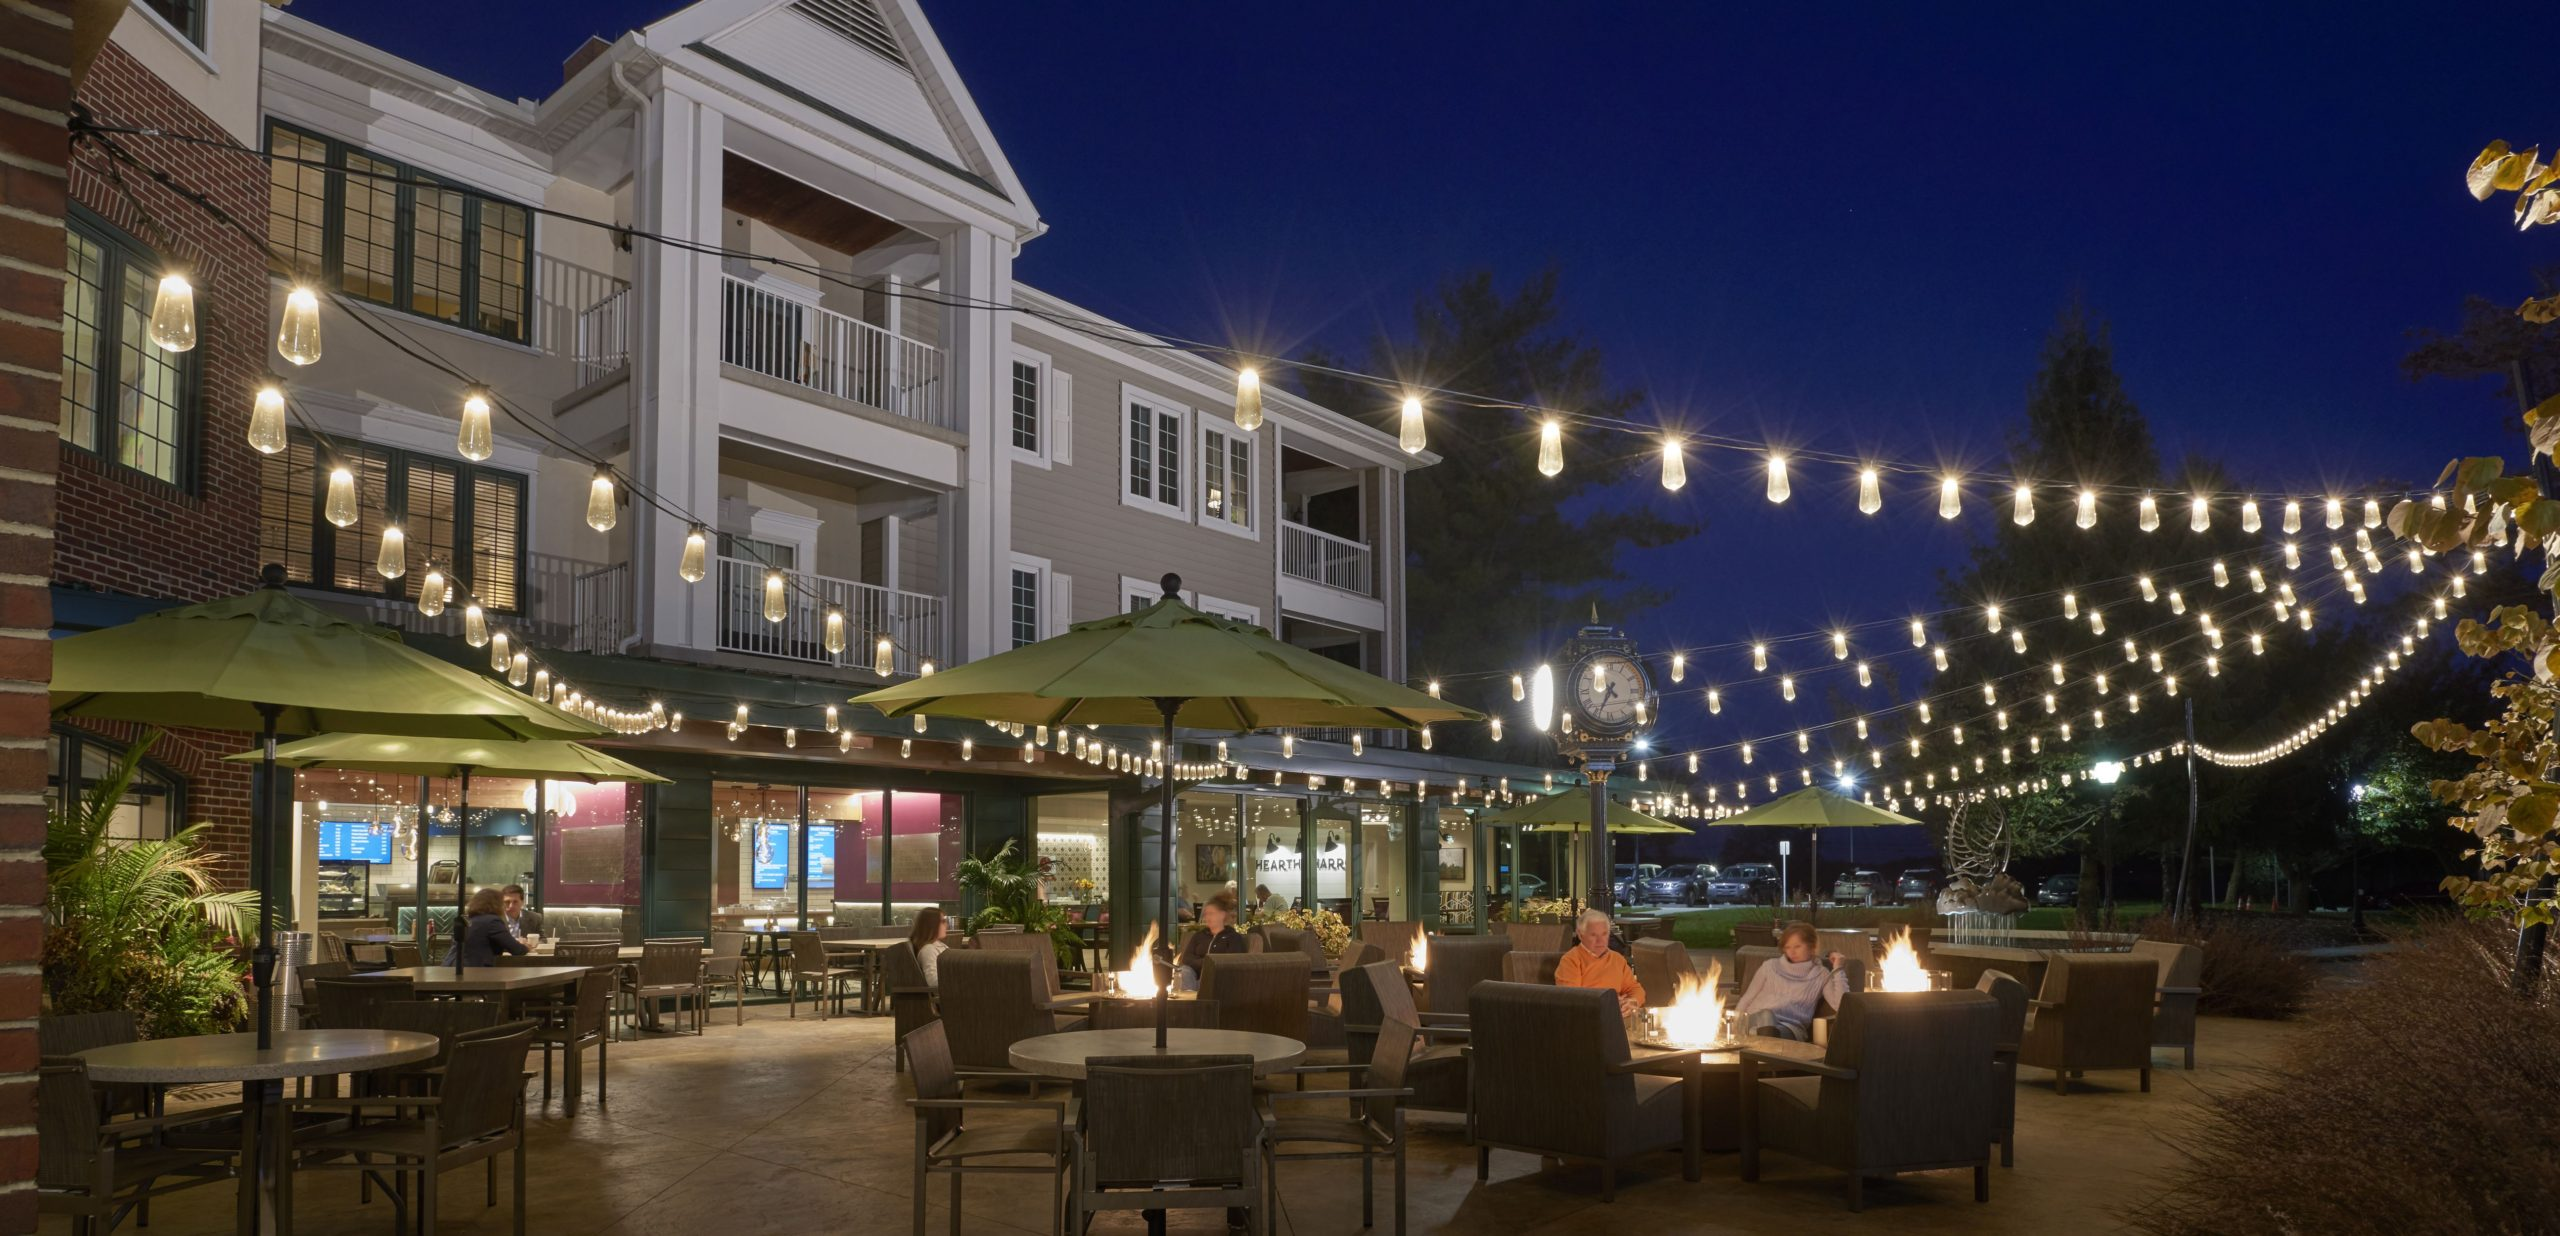 lighting for night and day use is another design trend for outdoor venues